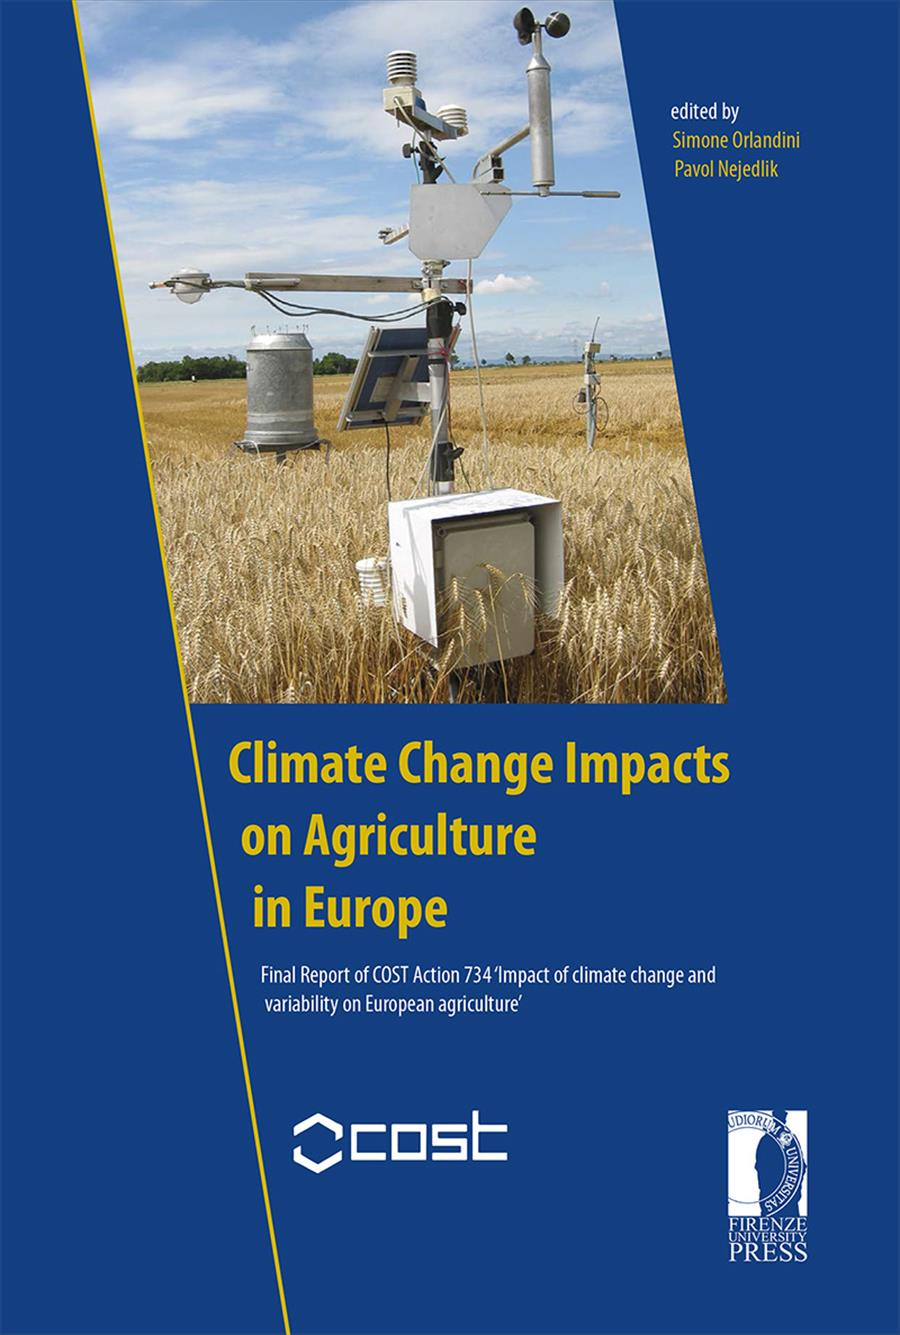 Climate Change Impacts on Agriculture in Europe